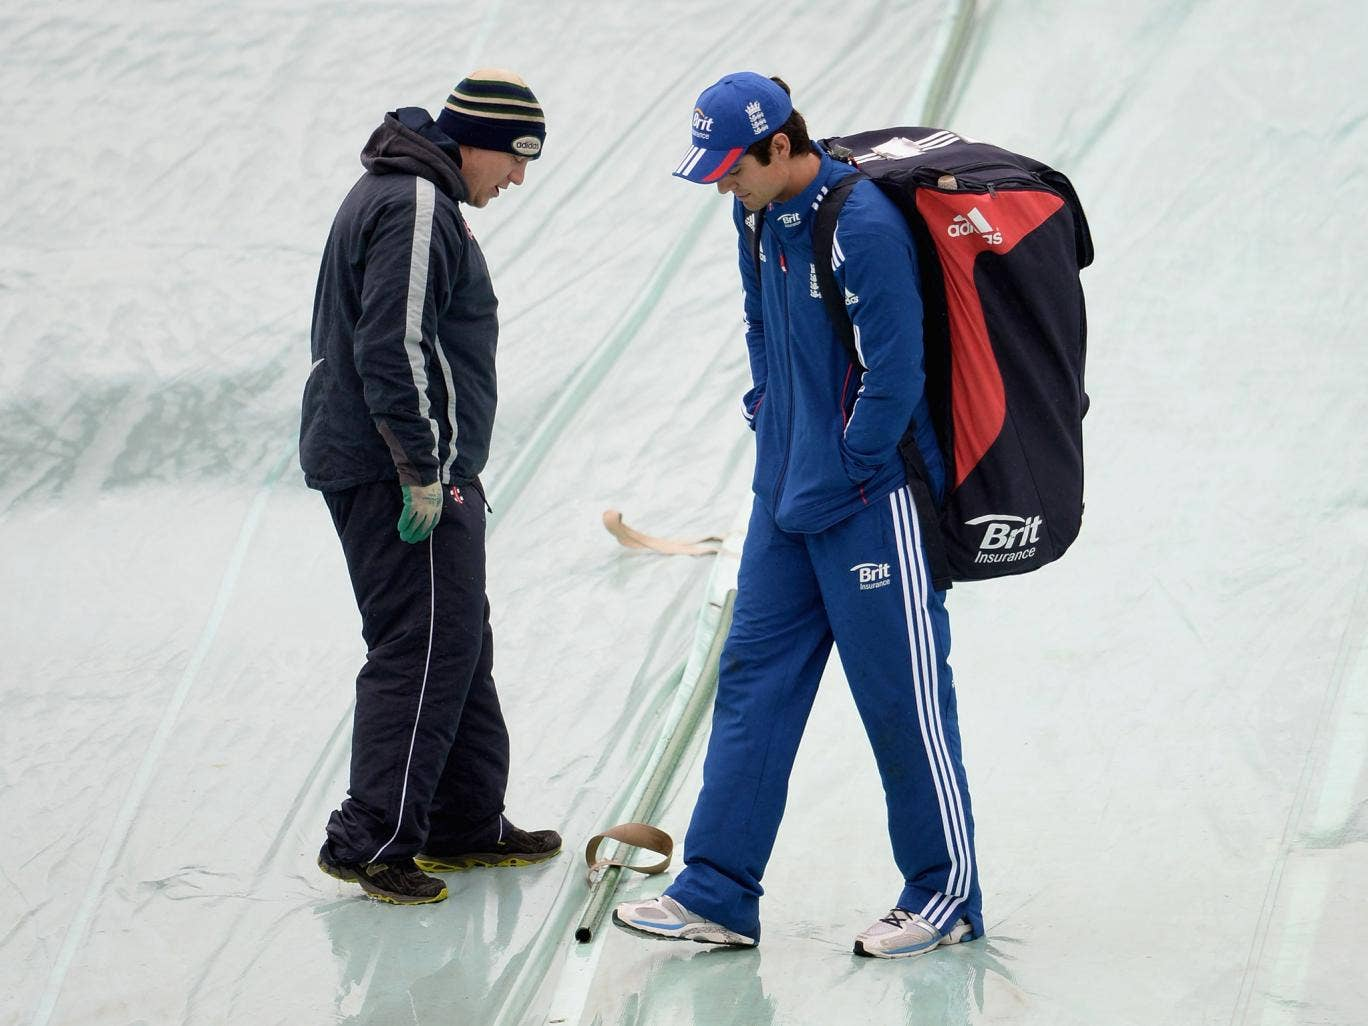 England captain Alastair Cook speaks with groundsman as rain delays play on day one of 2nd Investec Test match between England and New Zealand at Headingley